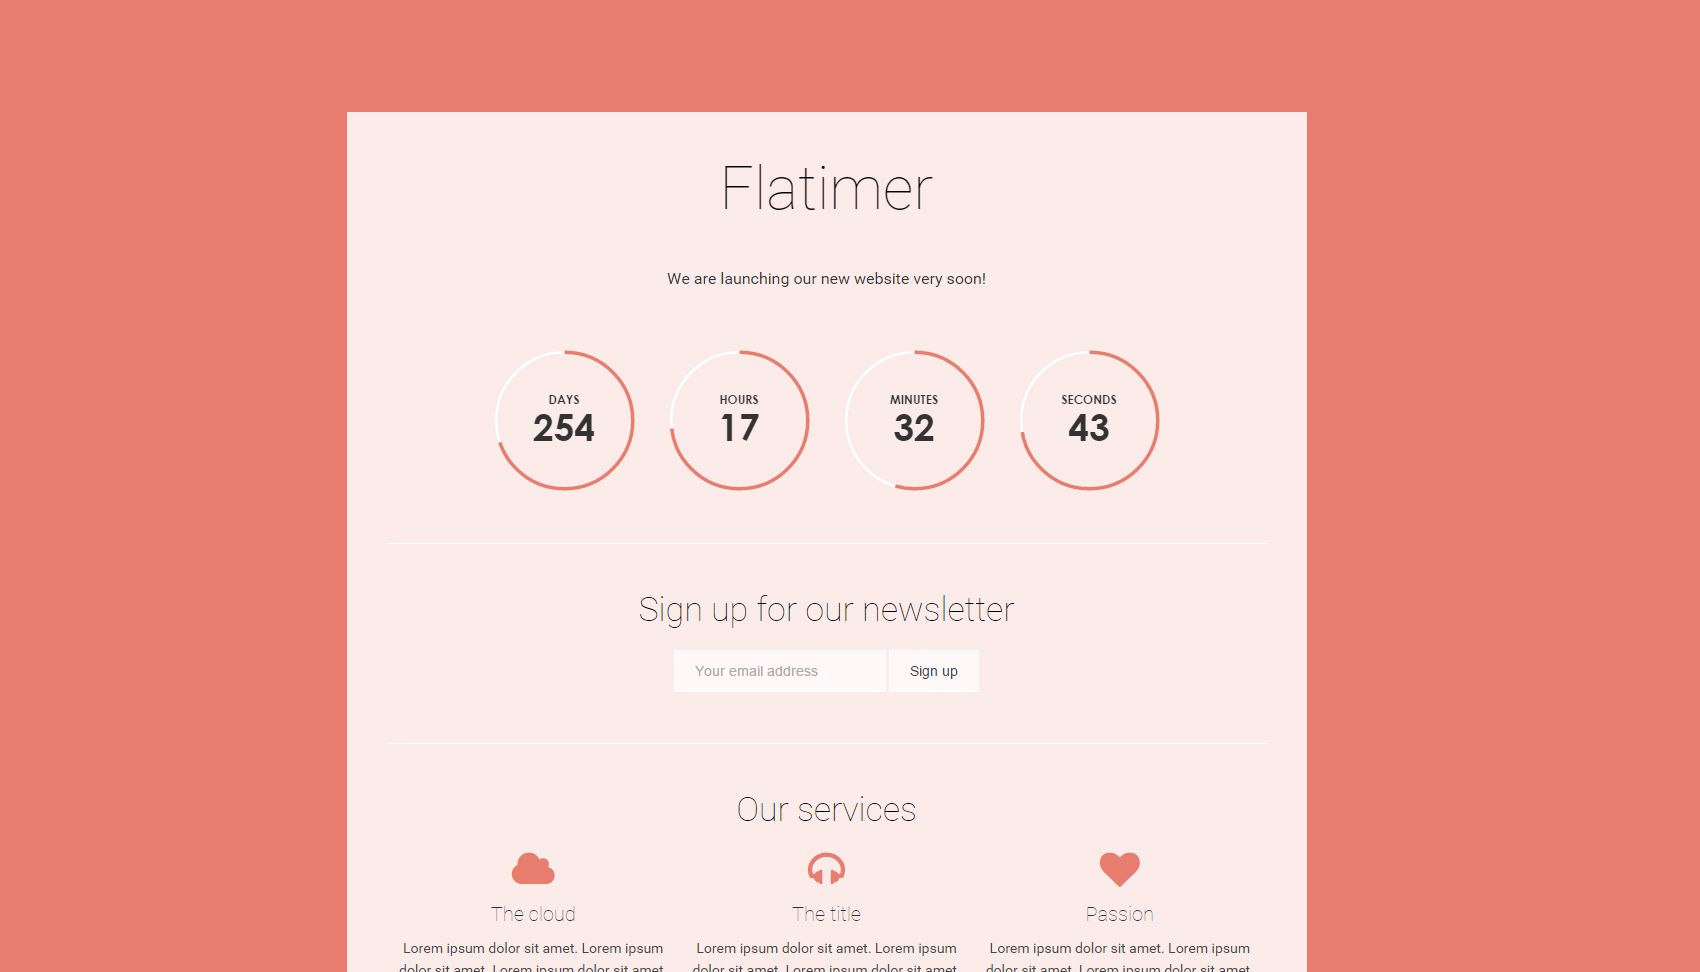 Flatimer - Coming soon HTML Template Screenshot 3